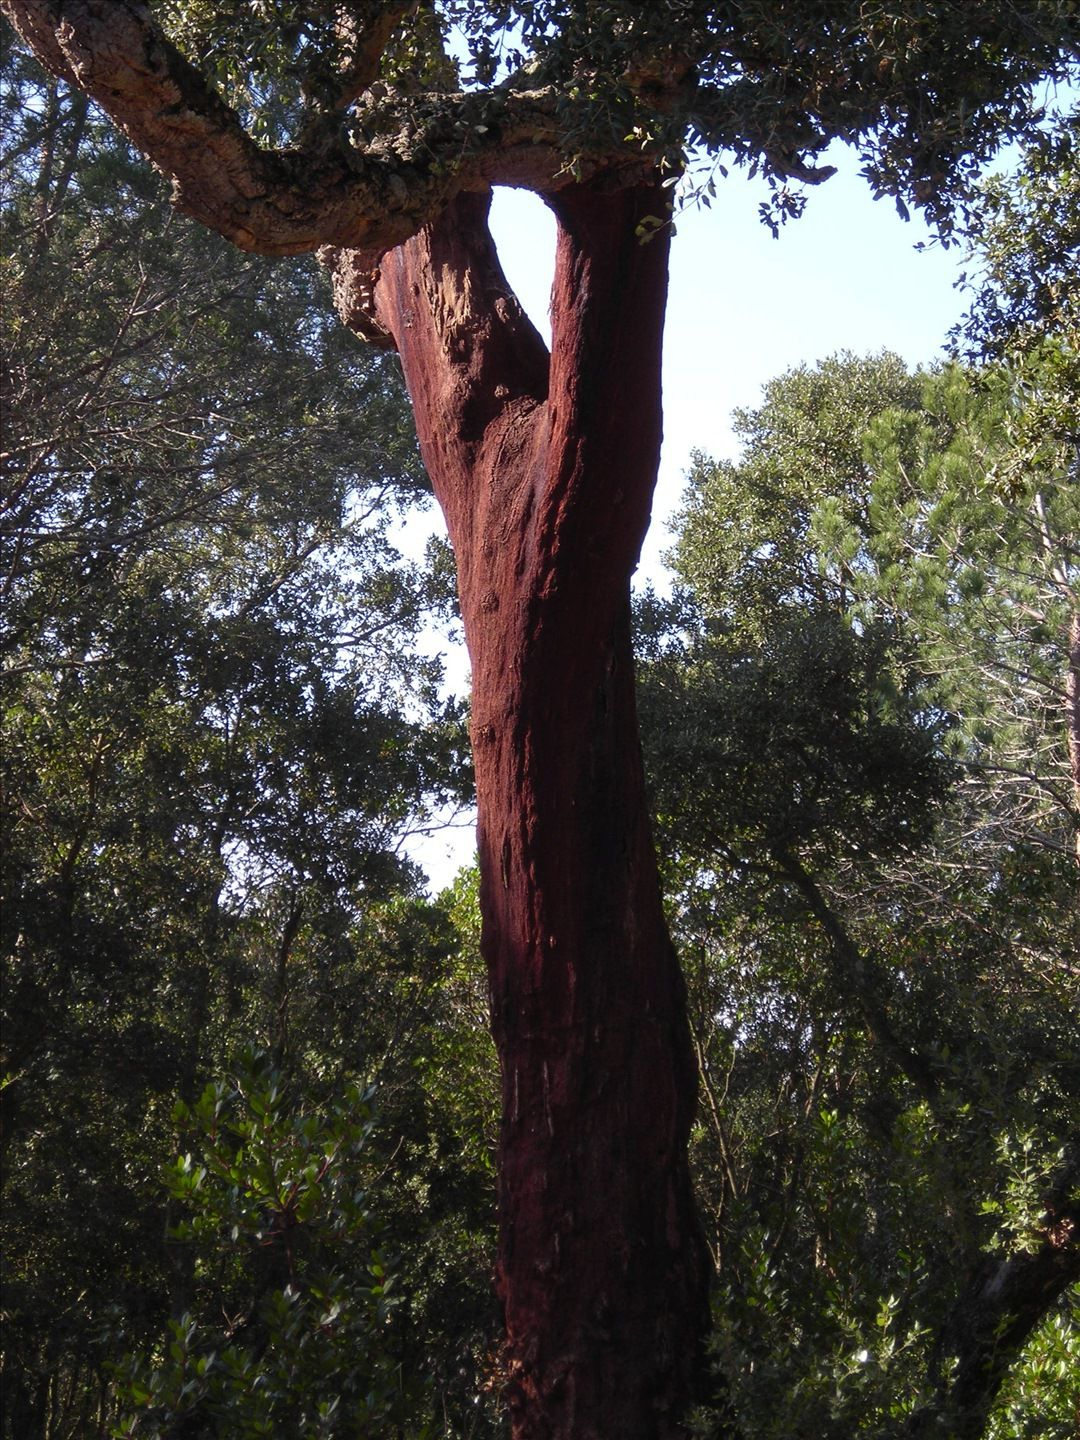 Cork oak trunk. © treesoftheworld.net, CC by 3.0